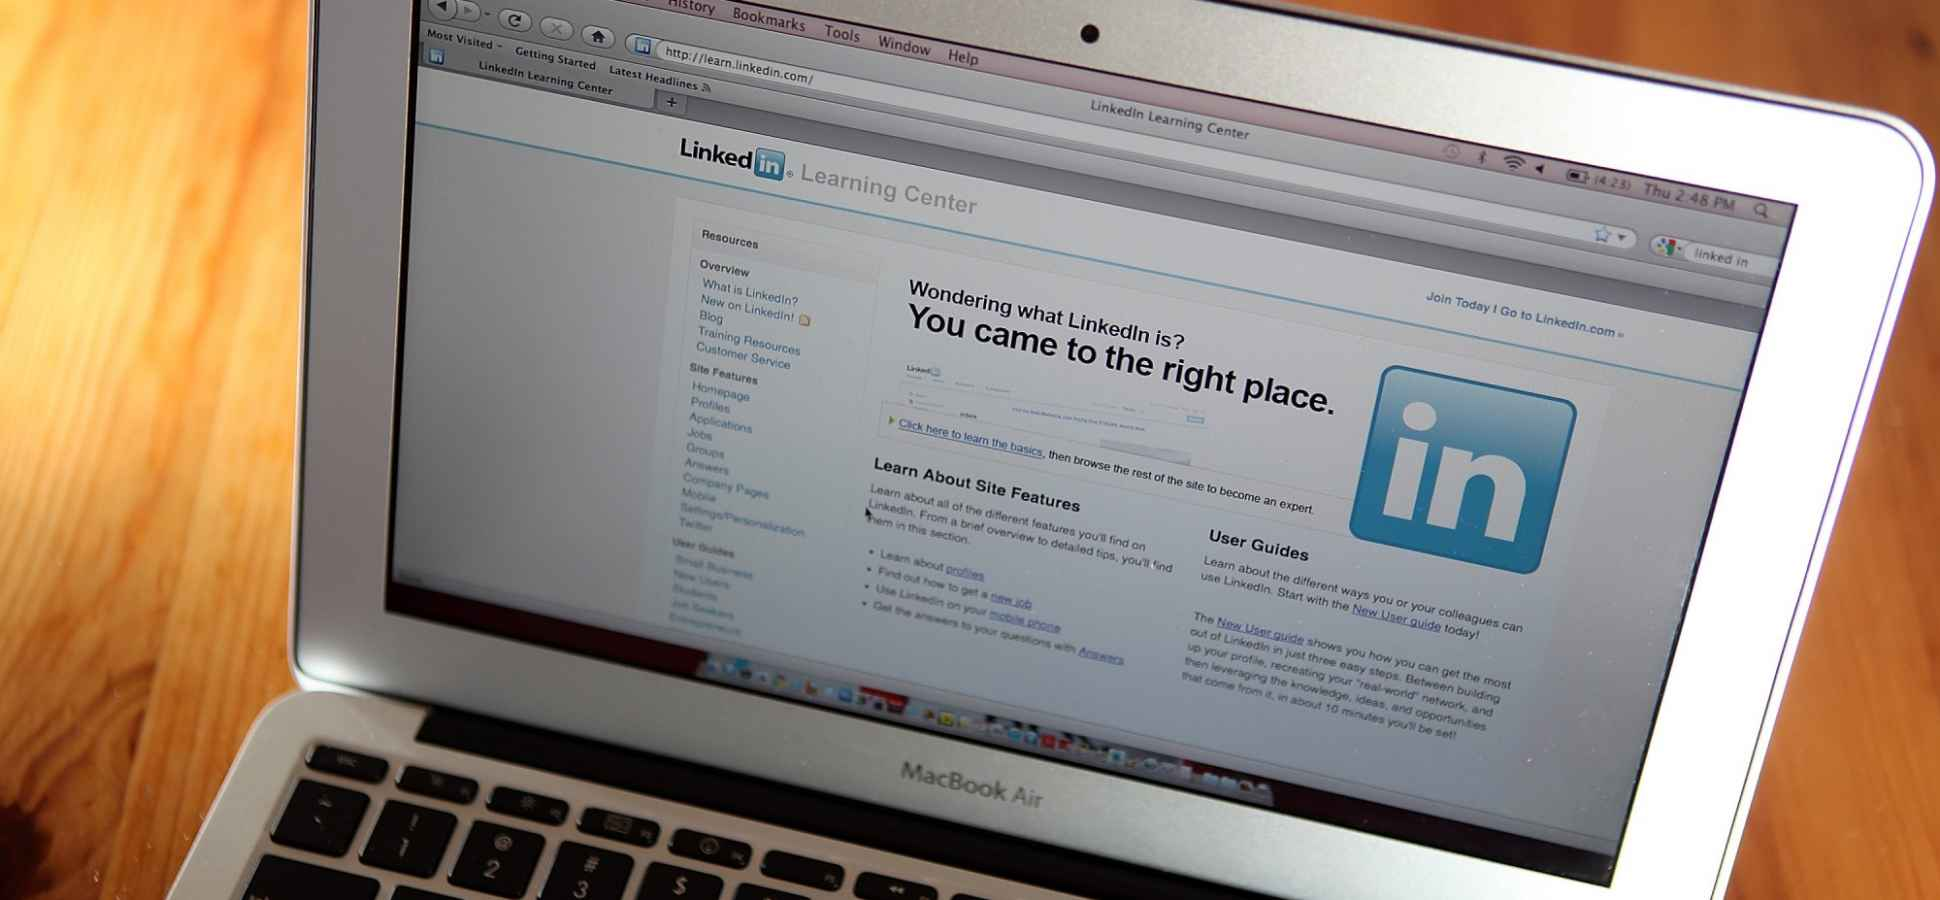 3 Tips to Get Noticed on LinkedIn (From a Former Employee)